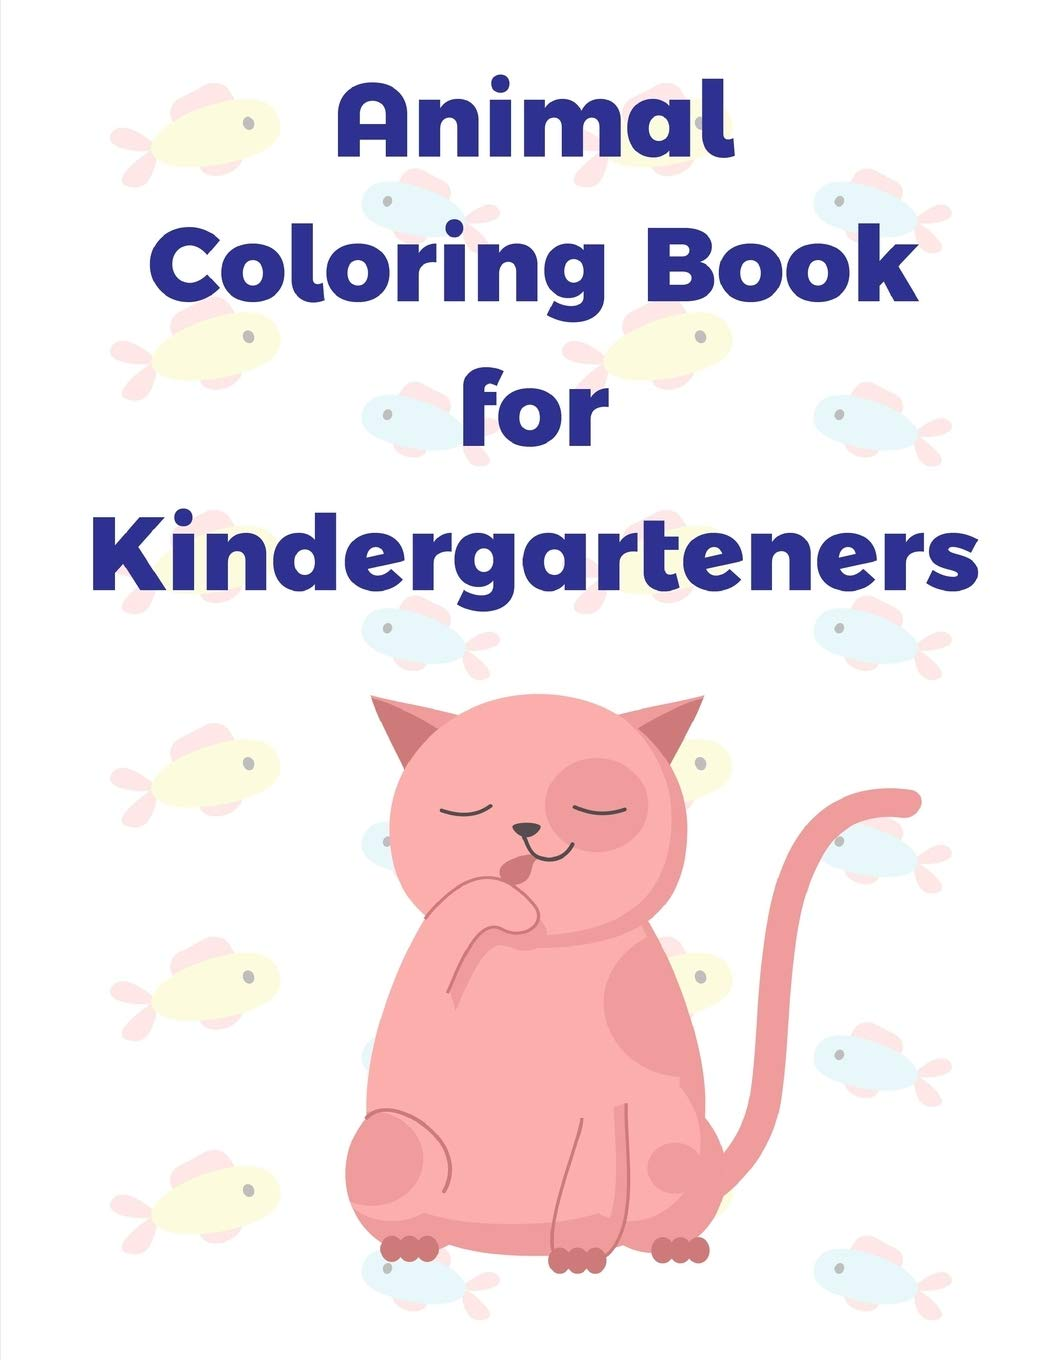 Buy Animal Coloring Book For Kindergarteners Coloring Books For Boys And Girls With Cute Animals Relaxing Colouring Pages Family Education Book Online At Low Prices In India Animal Coloring Book For